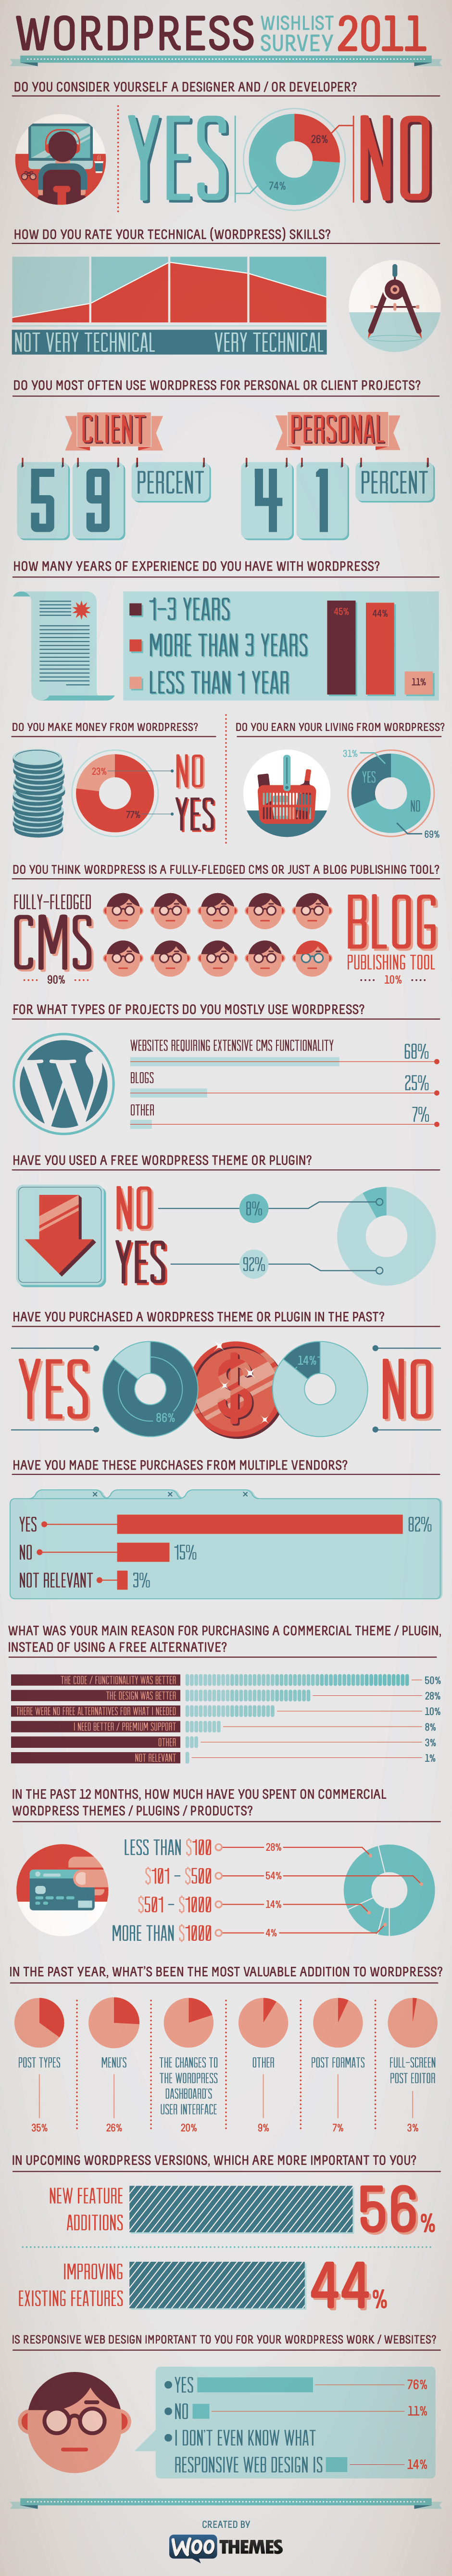 wishlist survey final What the WordPress community wants for 2012